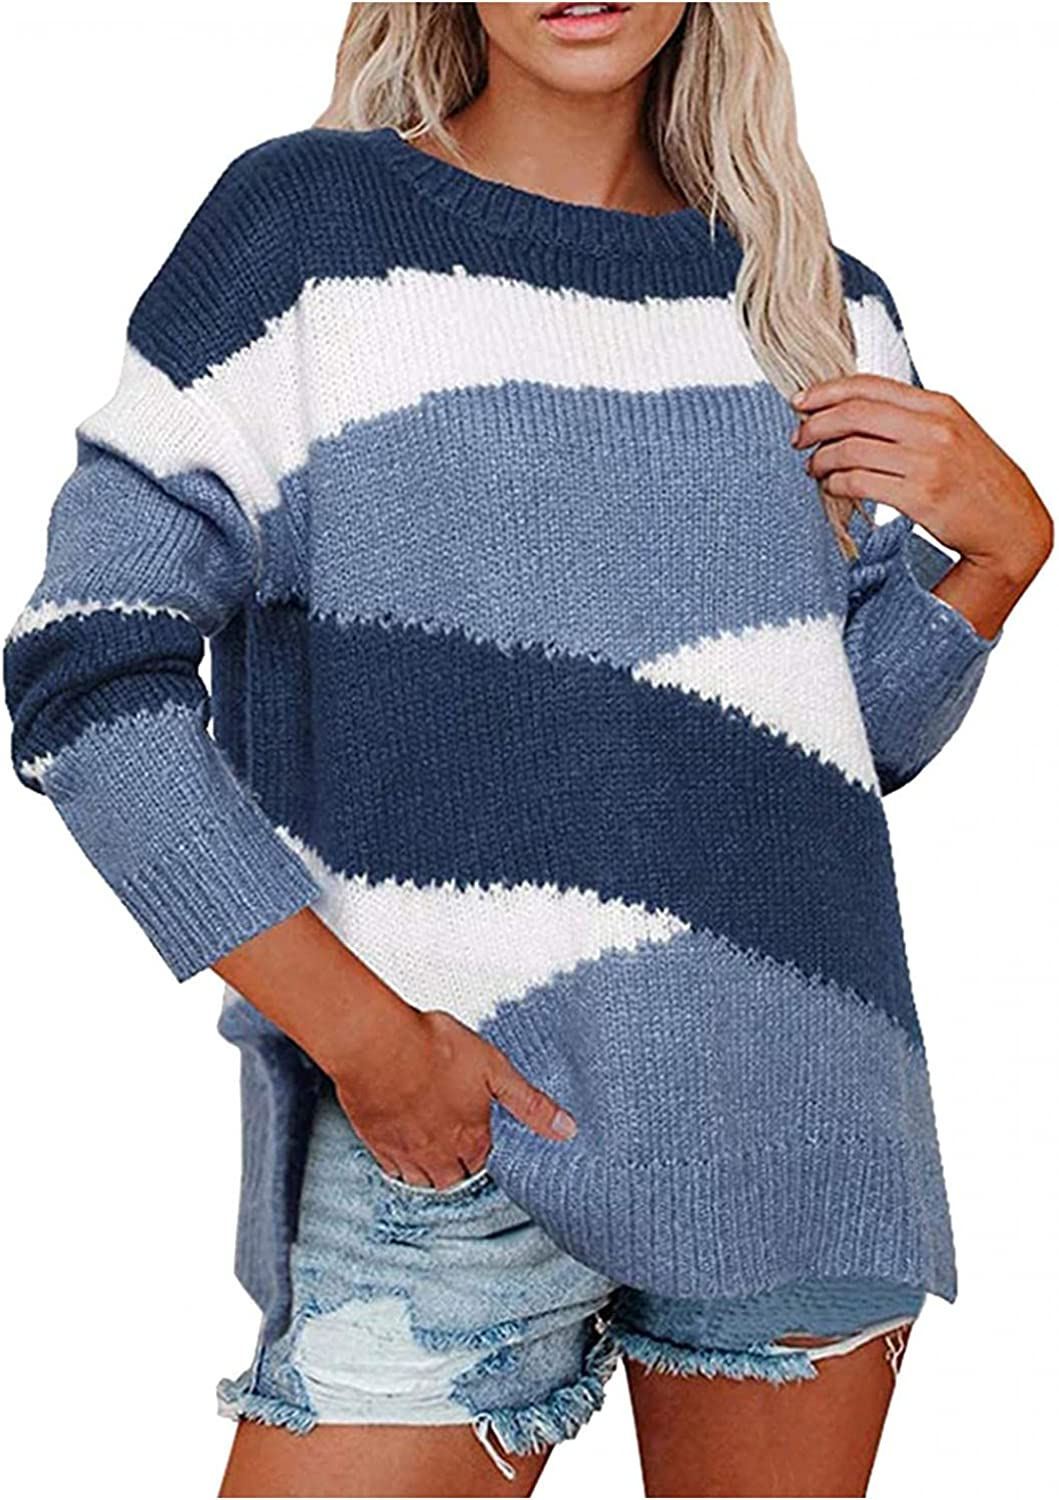 Sweaters for Women Crew Neck Loose Drop Shoulder Long Sleeve Casual Soft Lightweight Plus Size Pullover Sweaters